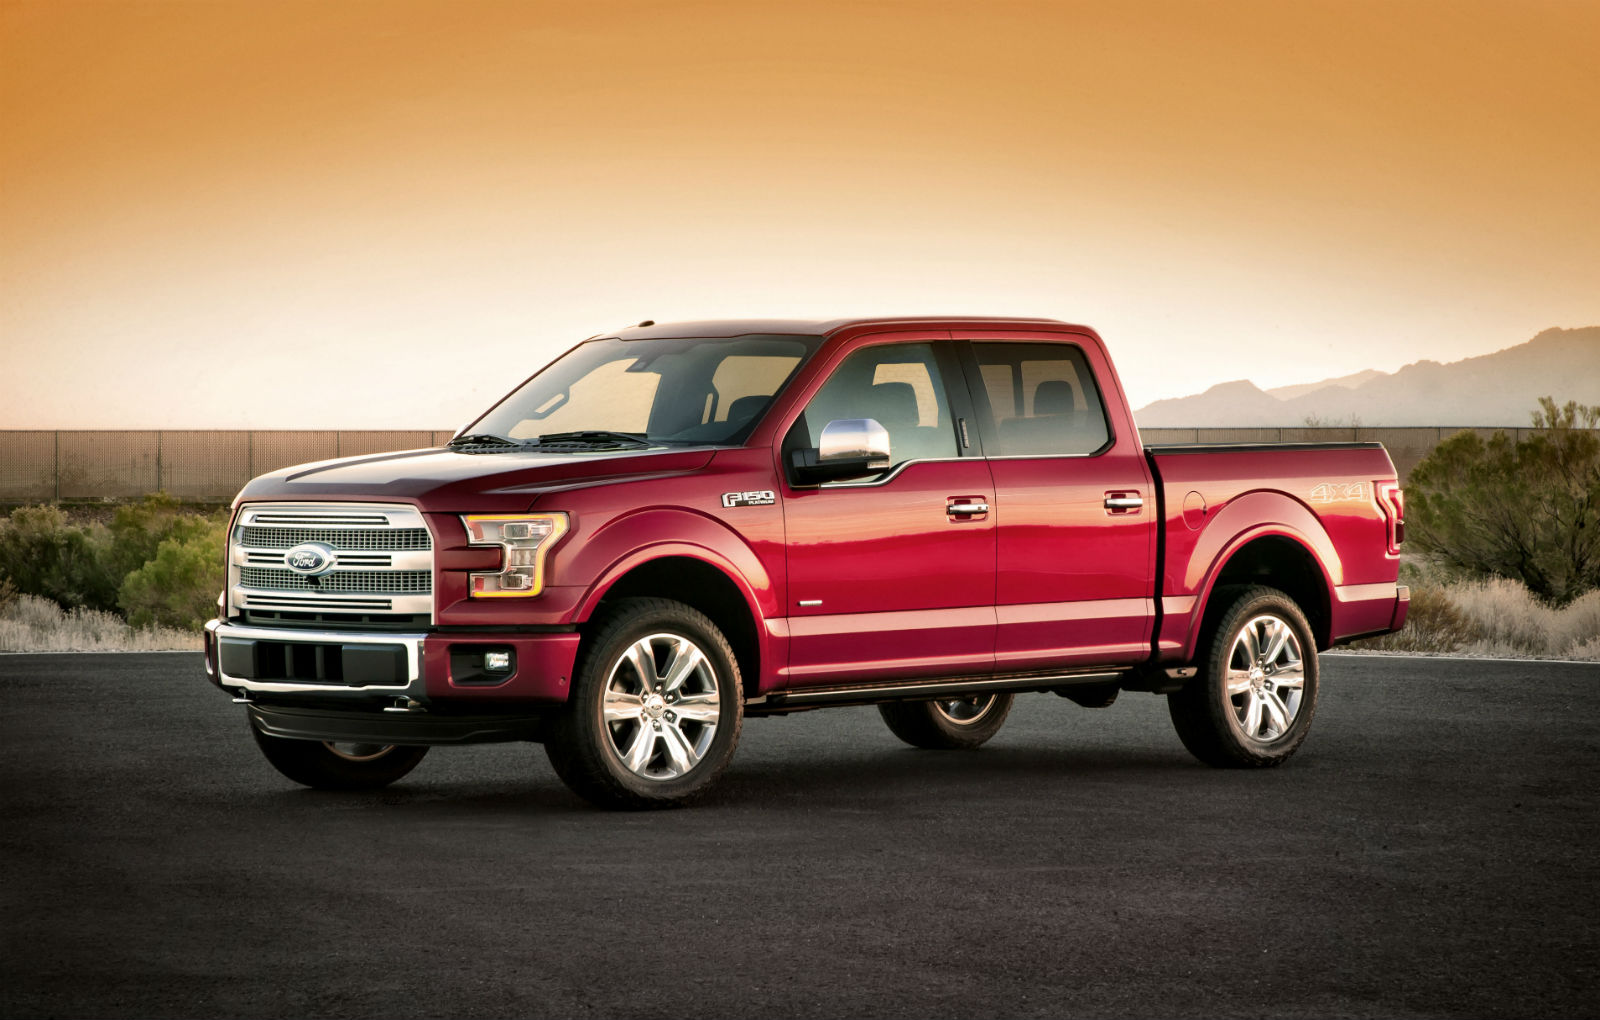 2015 Ford F 150 Wallpaper   HD 1600x1020